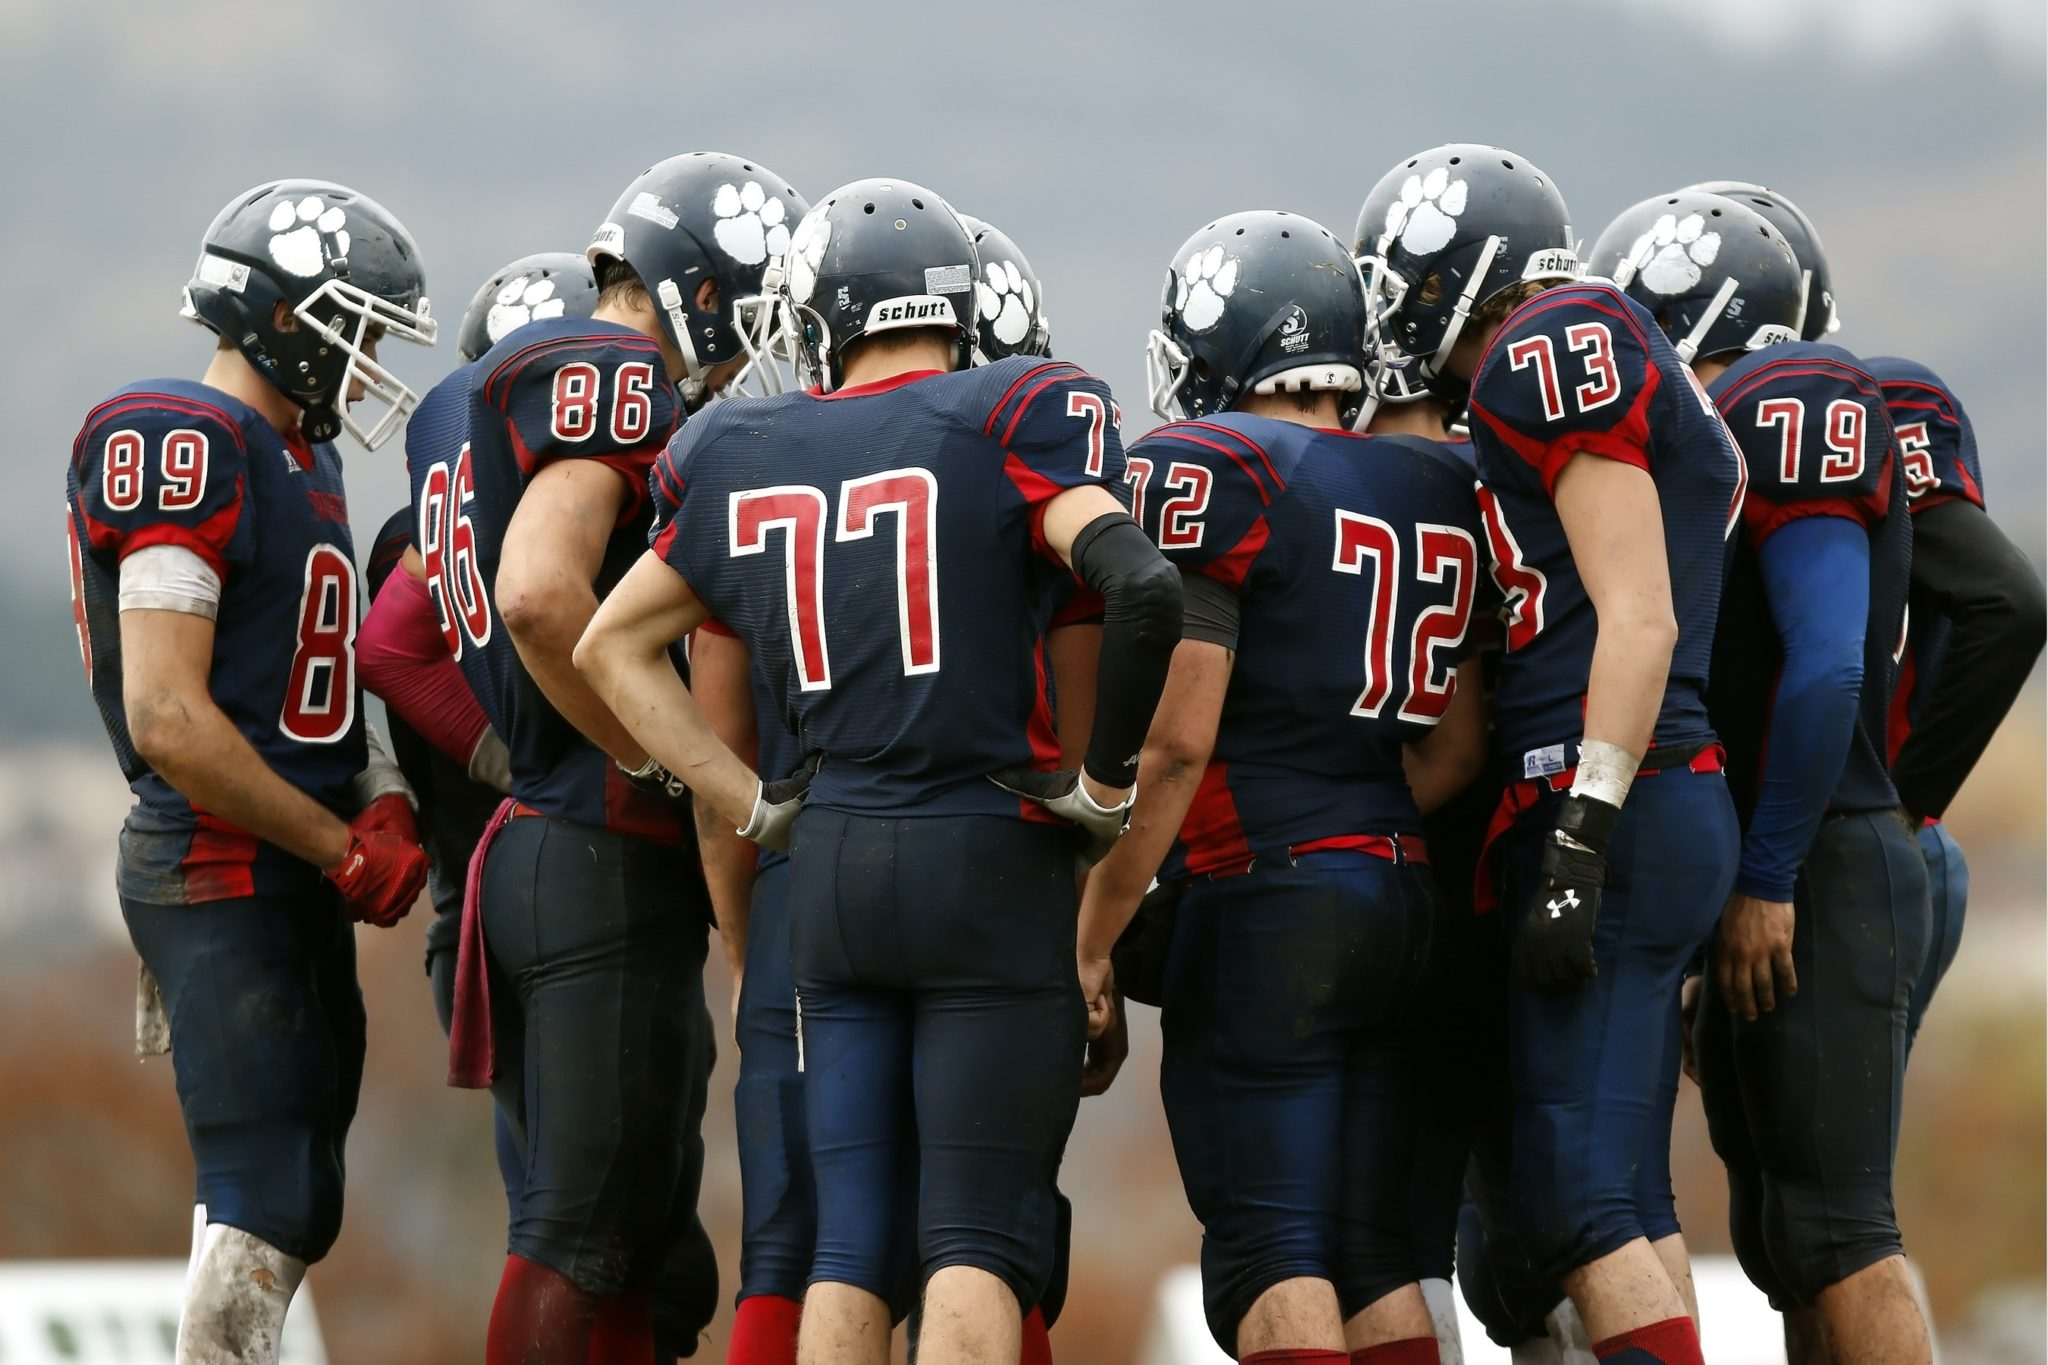 Game On? Prospects For Fall Sports Vary Widely In U.S.